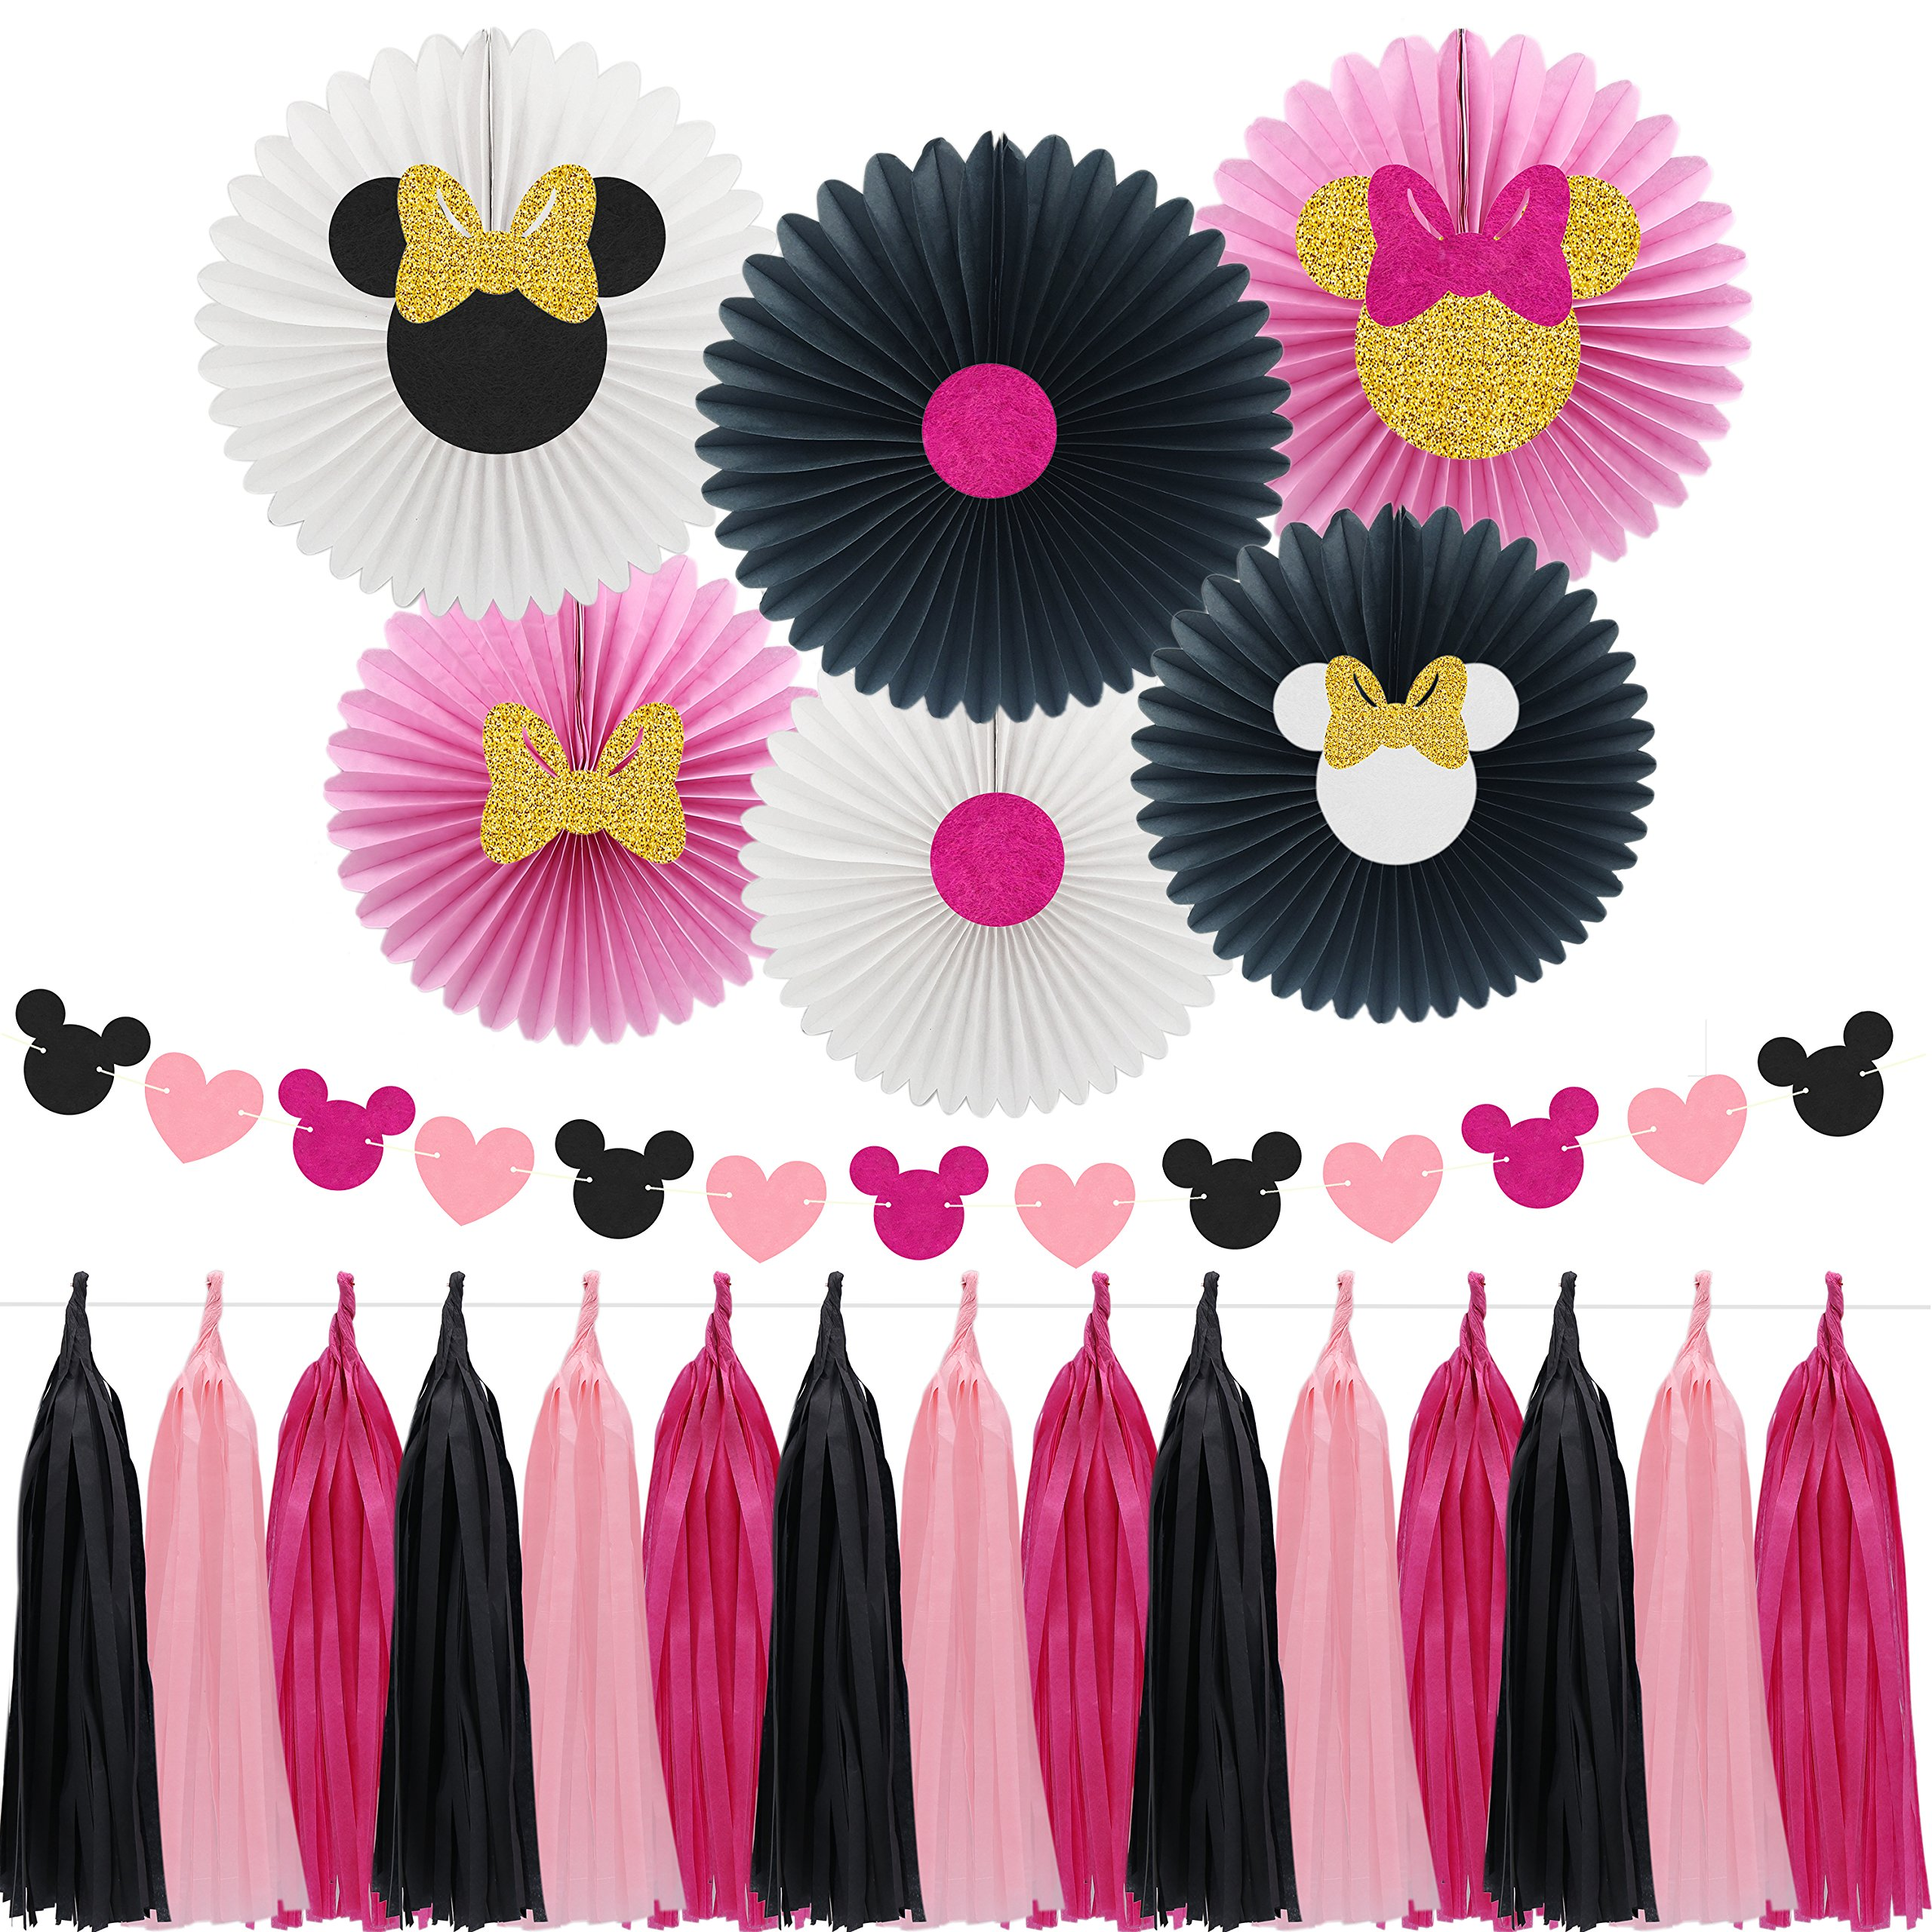 Minnie Mouse Party Decoration Supplies, Pattern Paper Fans with Pink & Black Paper Tassel Garland, Perfect for Girls Birthday Party